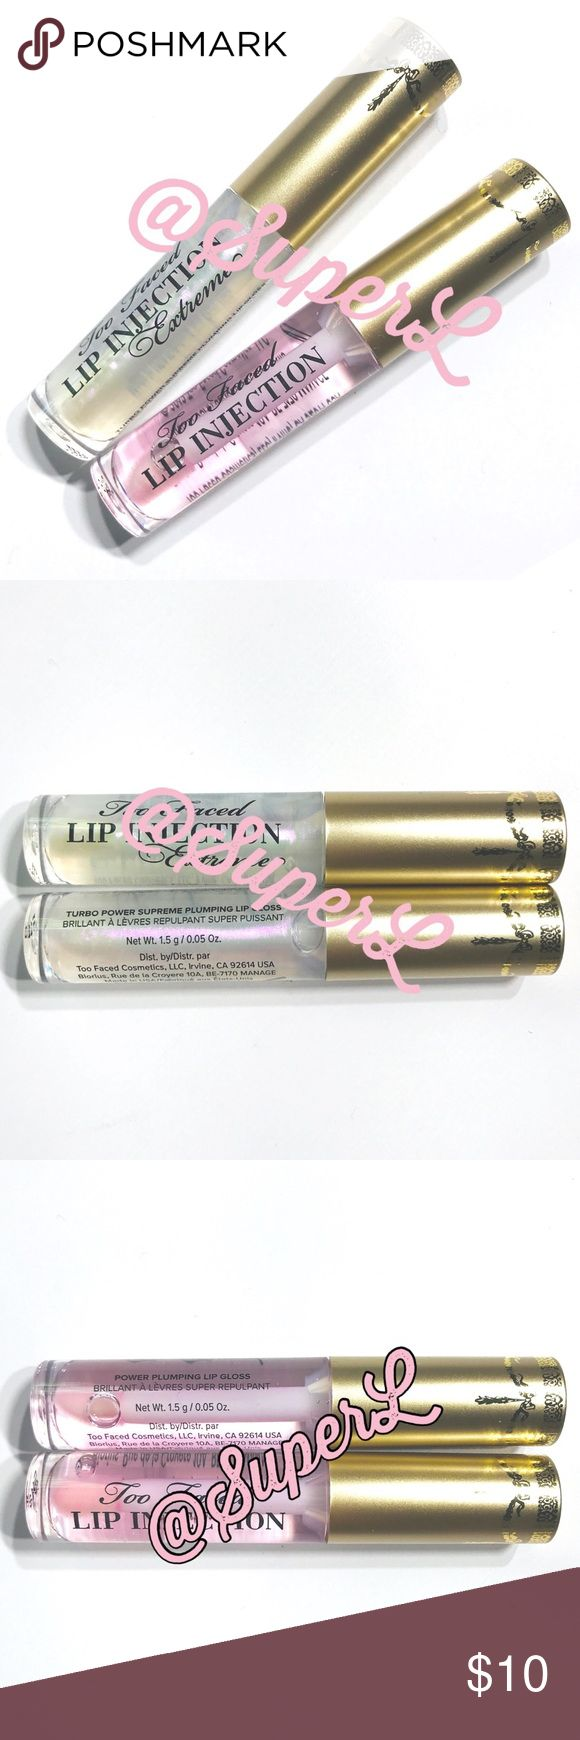 2/$15 Too Confronted Lip Excessive Injection Plumper Journey TOO FACED Lip Injection Lip…